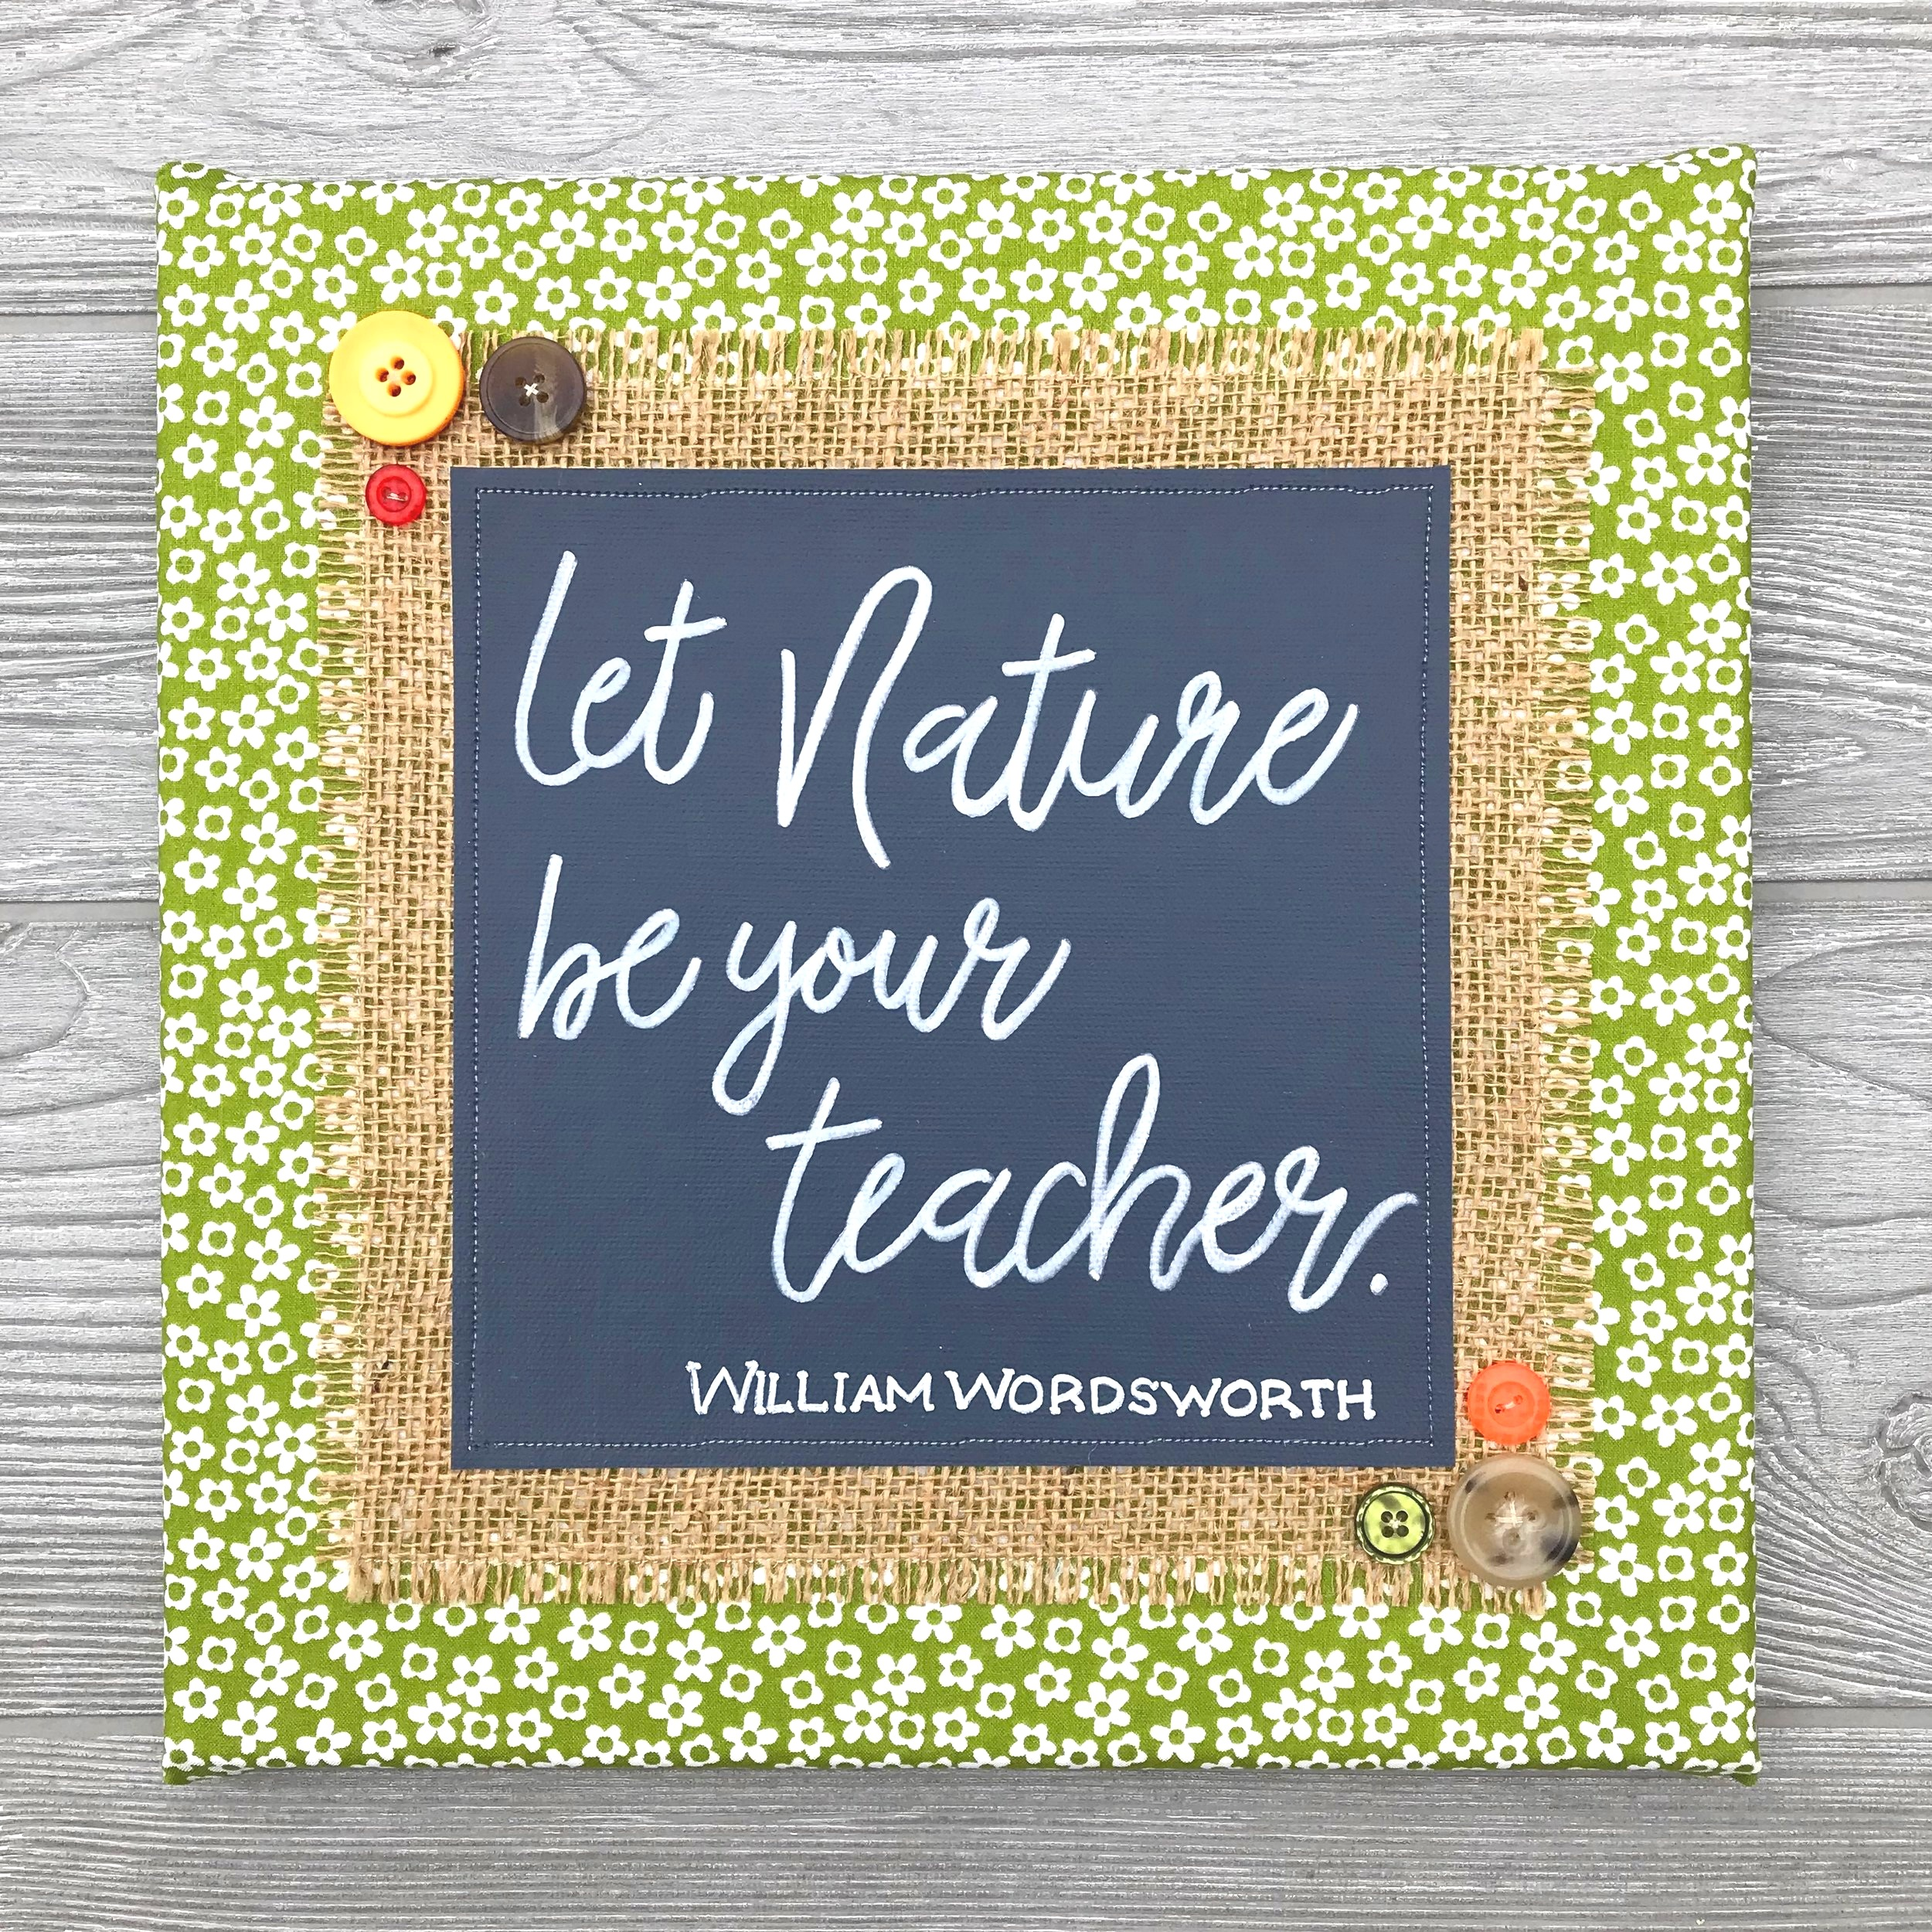 Let Nature Be Your Teacher - In his inspiring poem,